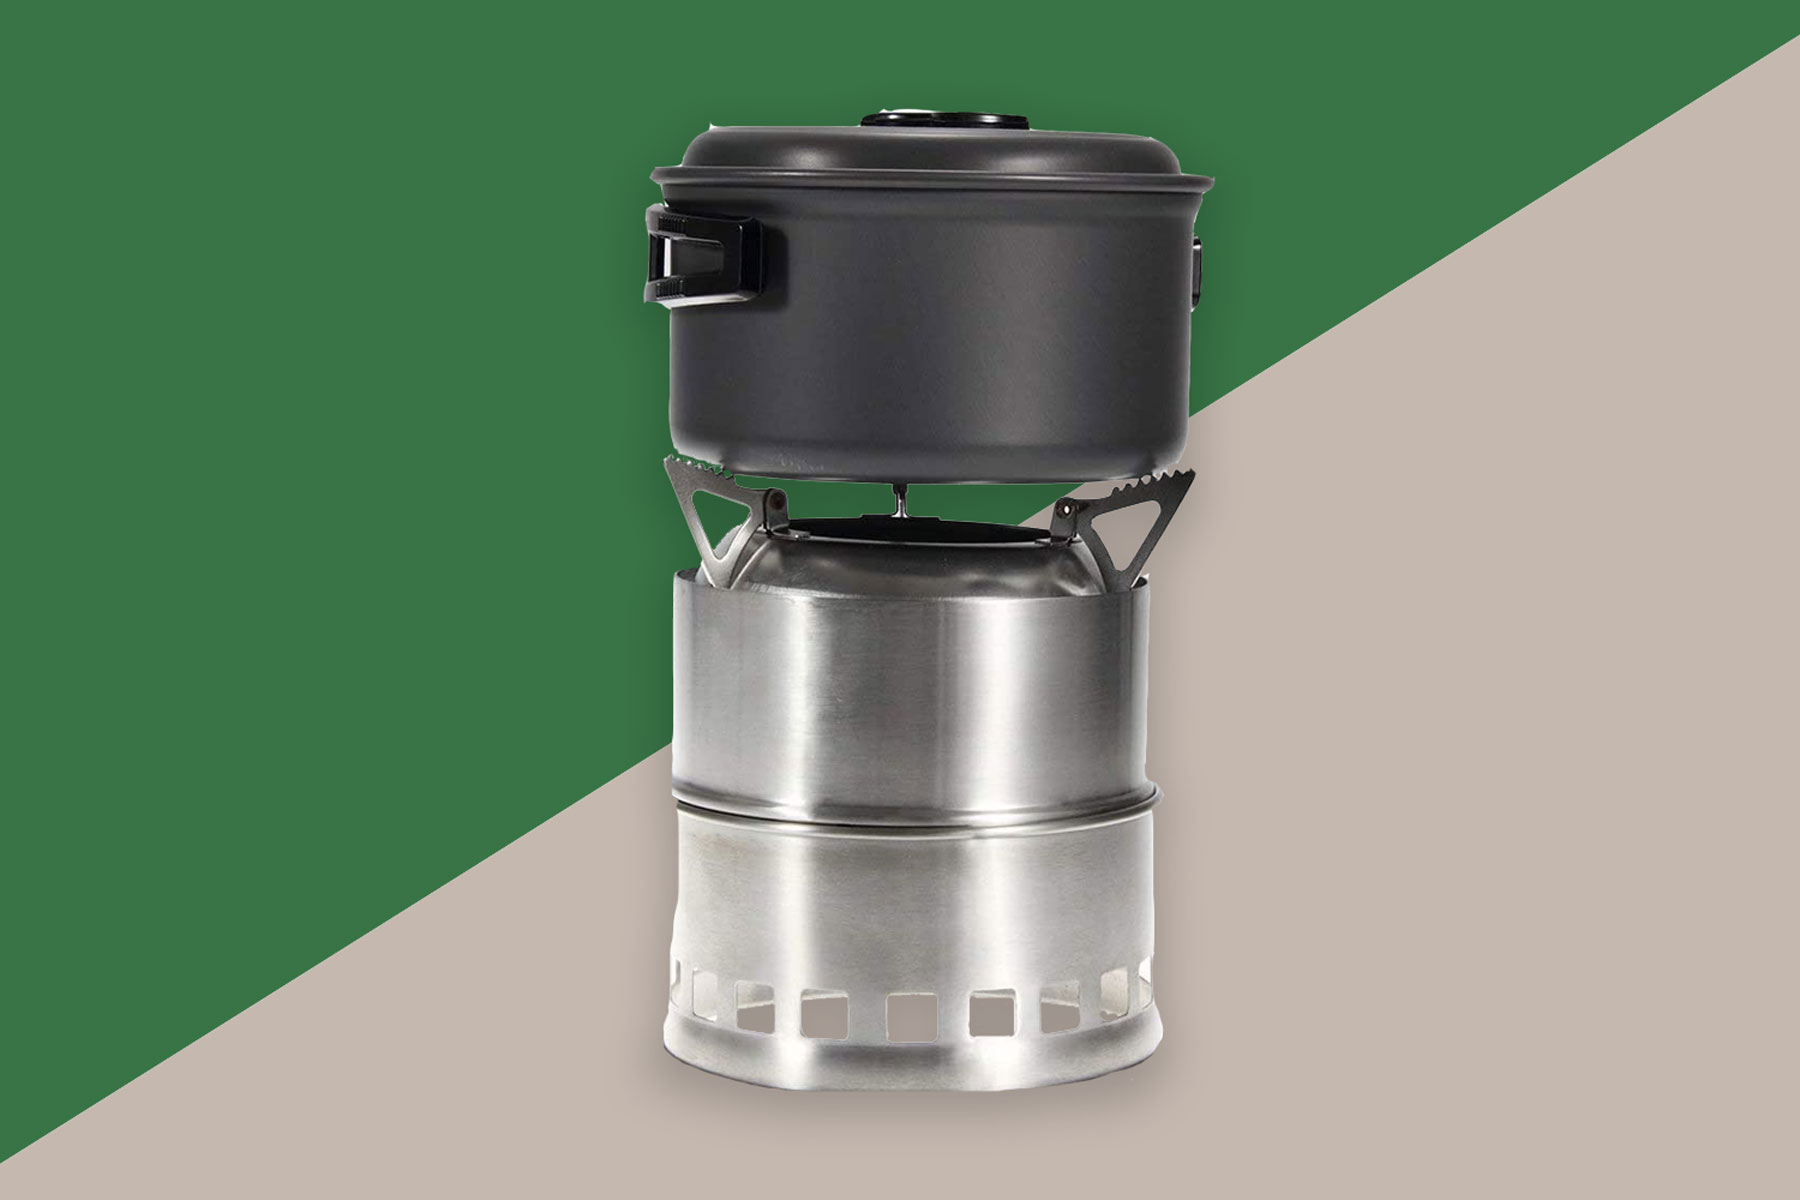 Camping stove with cooking pot